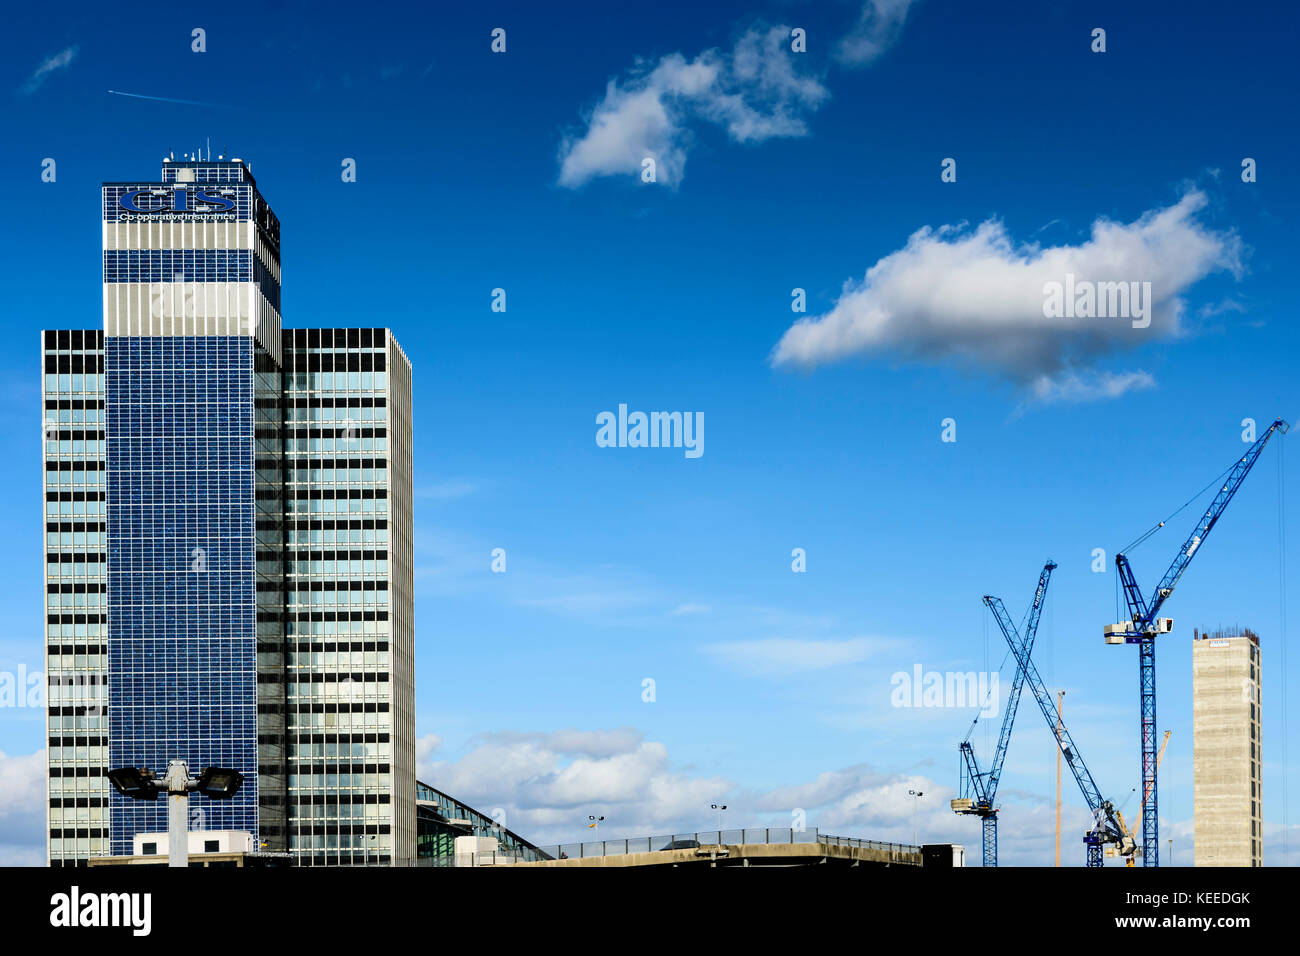 CIS Tower in Manchester with cranes and a deep blue sky, UK - Stock Image